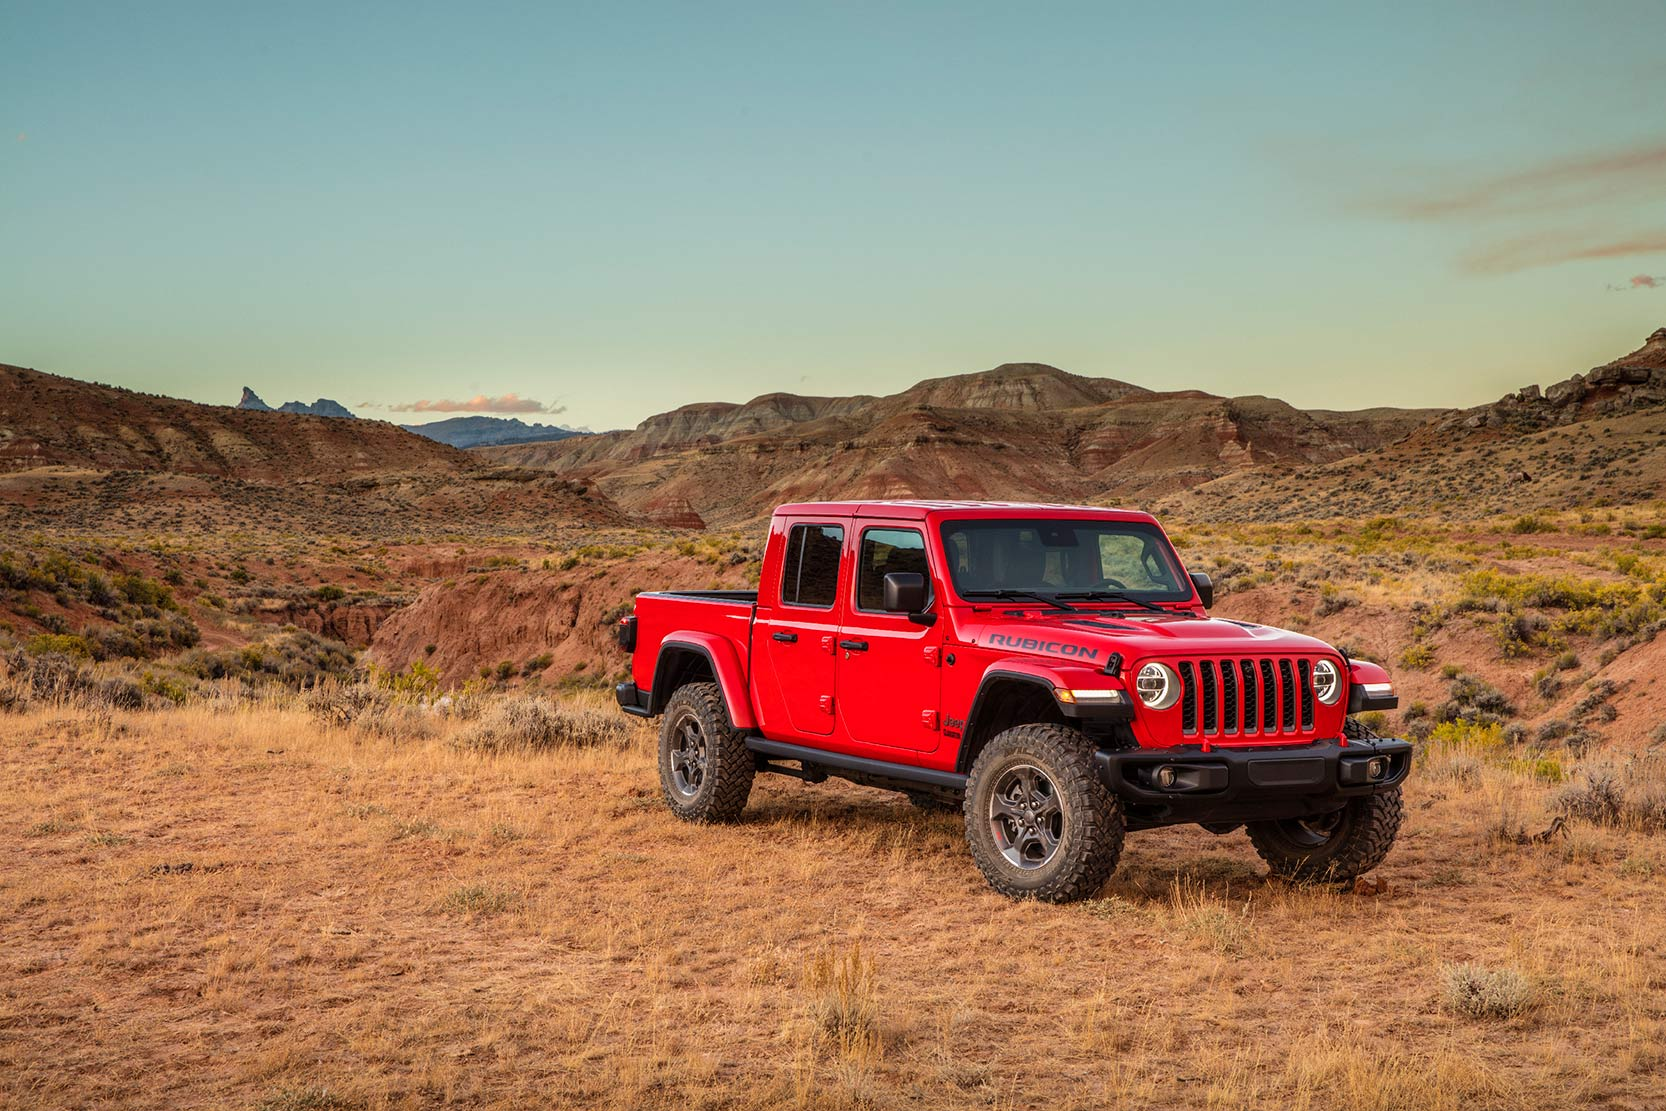 Exterieur_Jeep-Gladiator_122